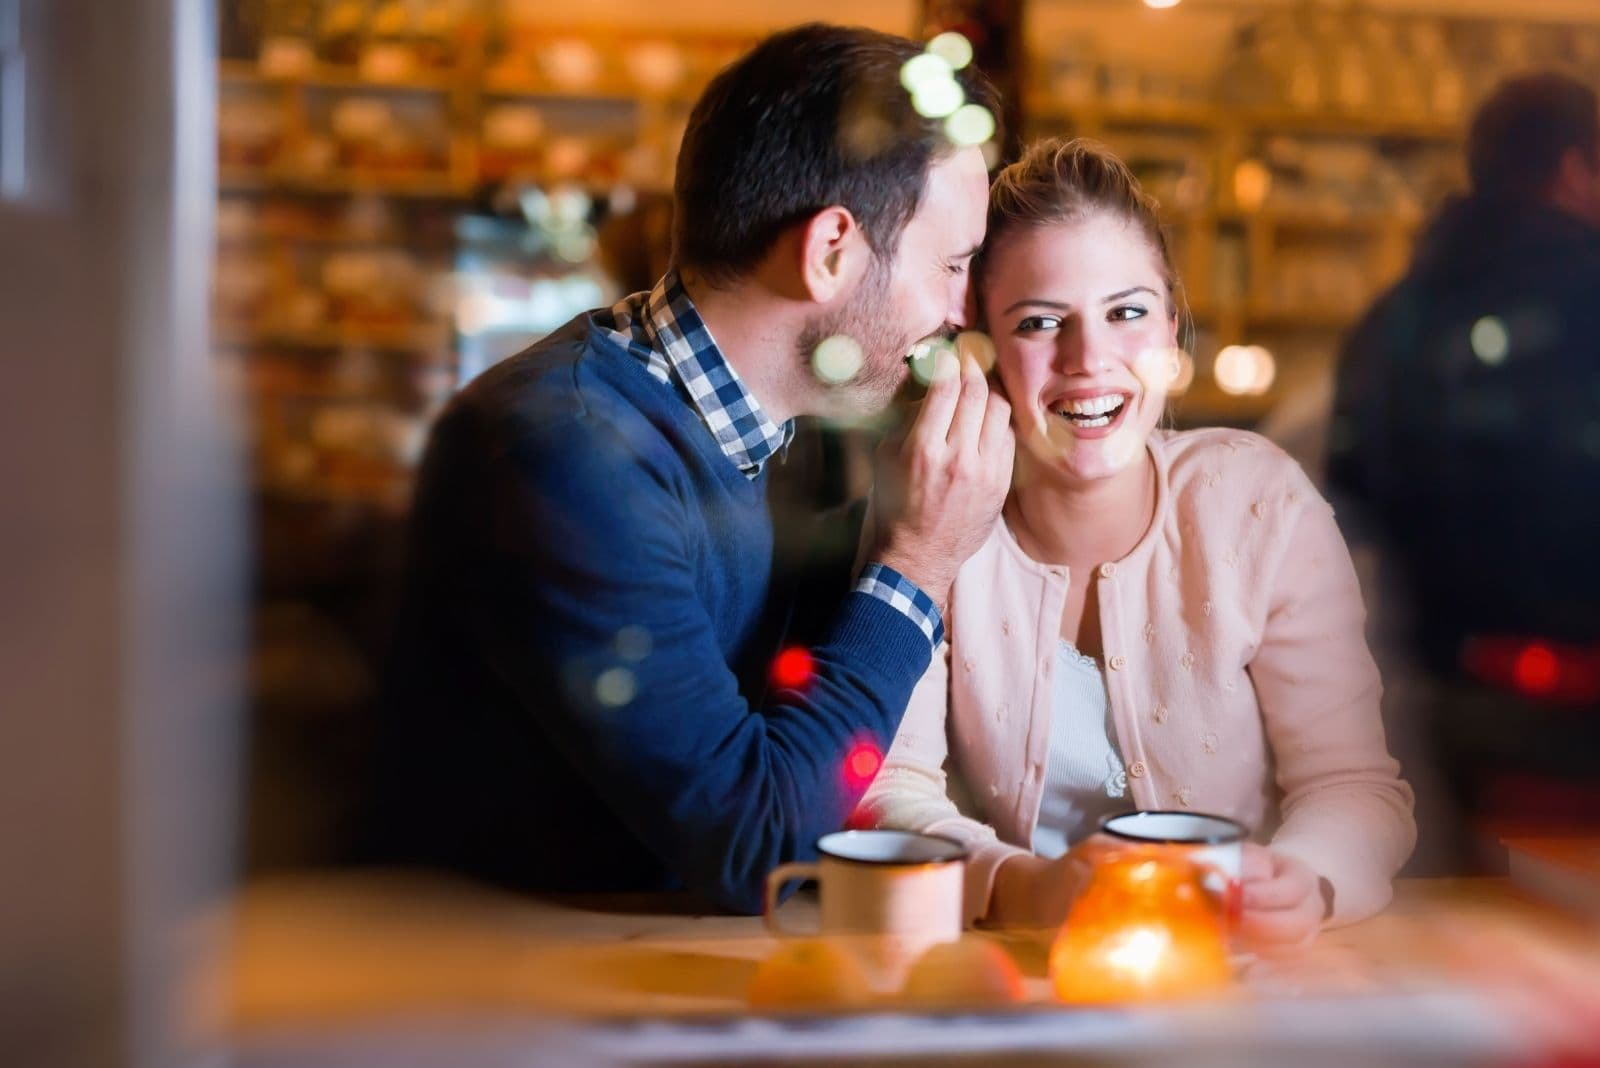 happy man whispering on the woman's ear while dating in a restaurant